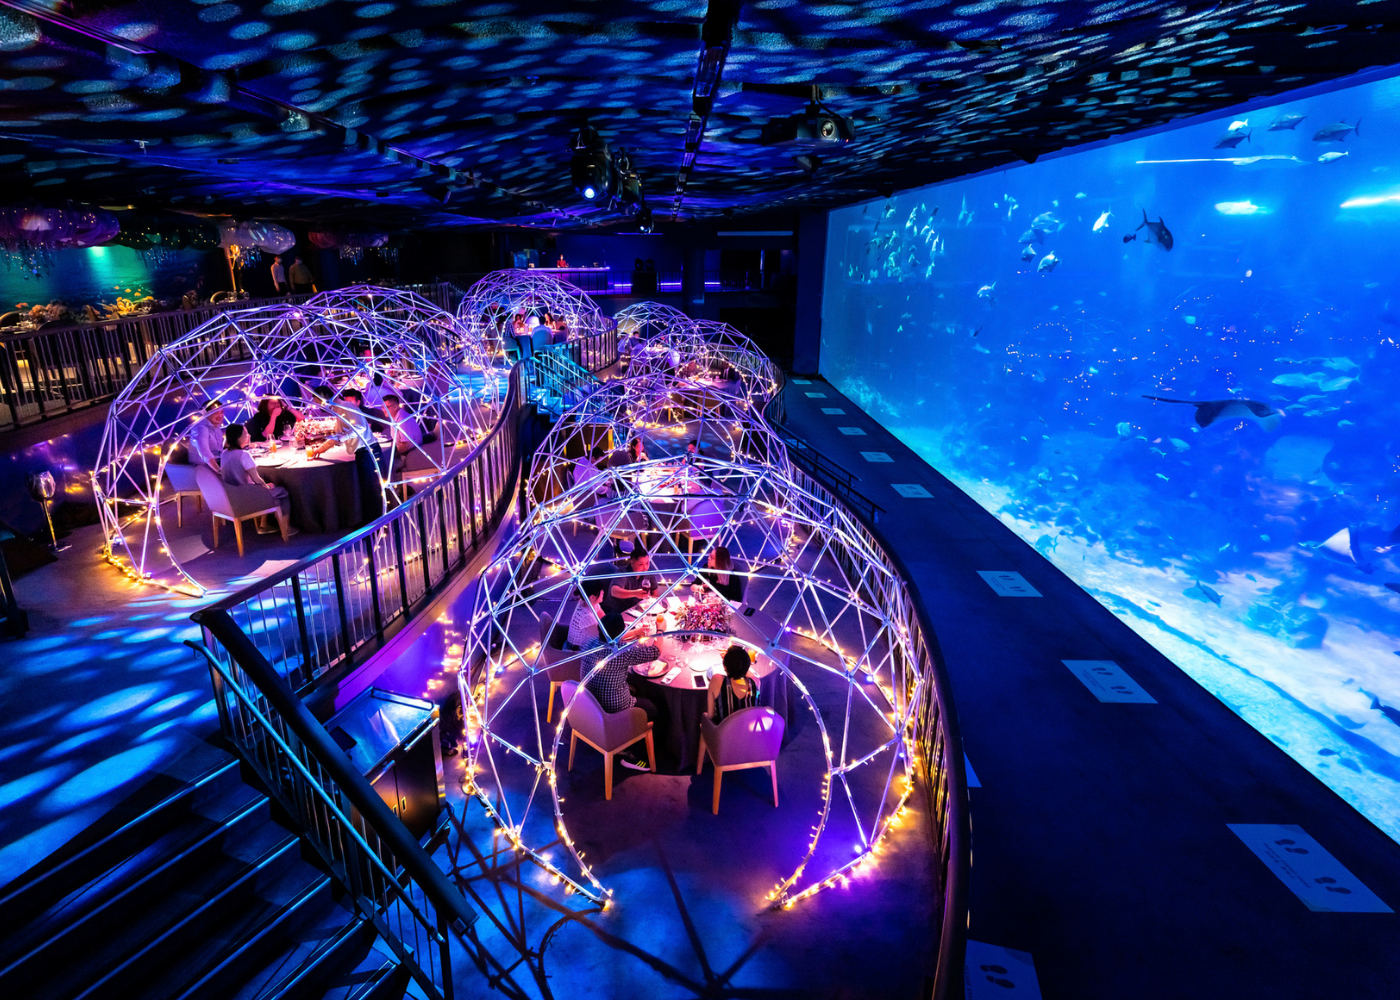 Hot New Tables in September 2020: A cool underwater culinary experience, stellar Swiss cuisine and more